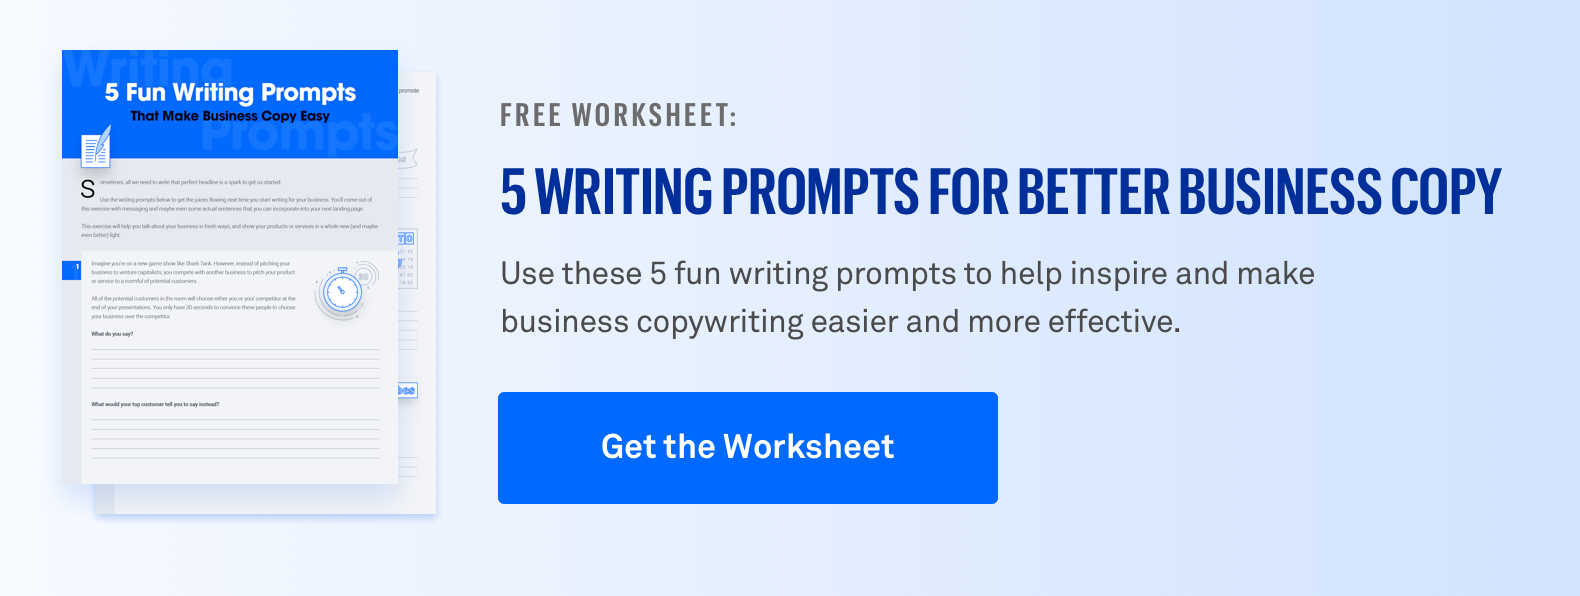 Get the 5 Fun Writing Prompts Worksheet